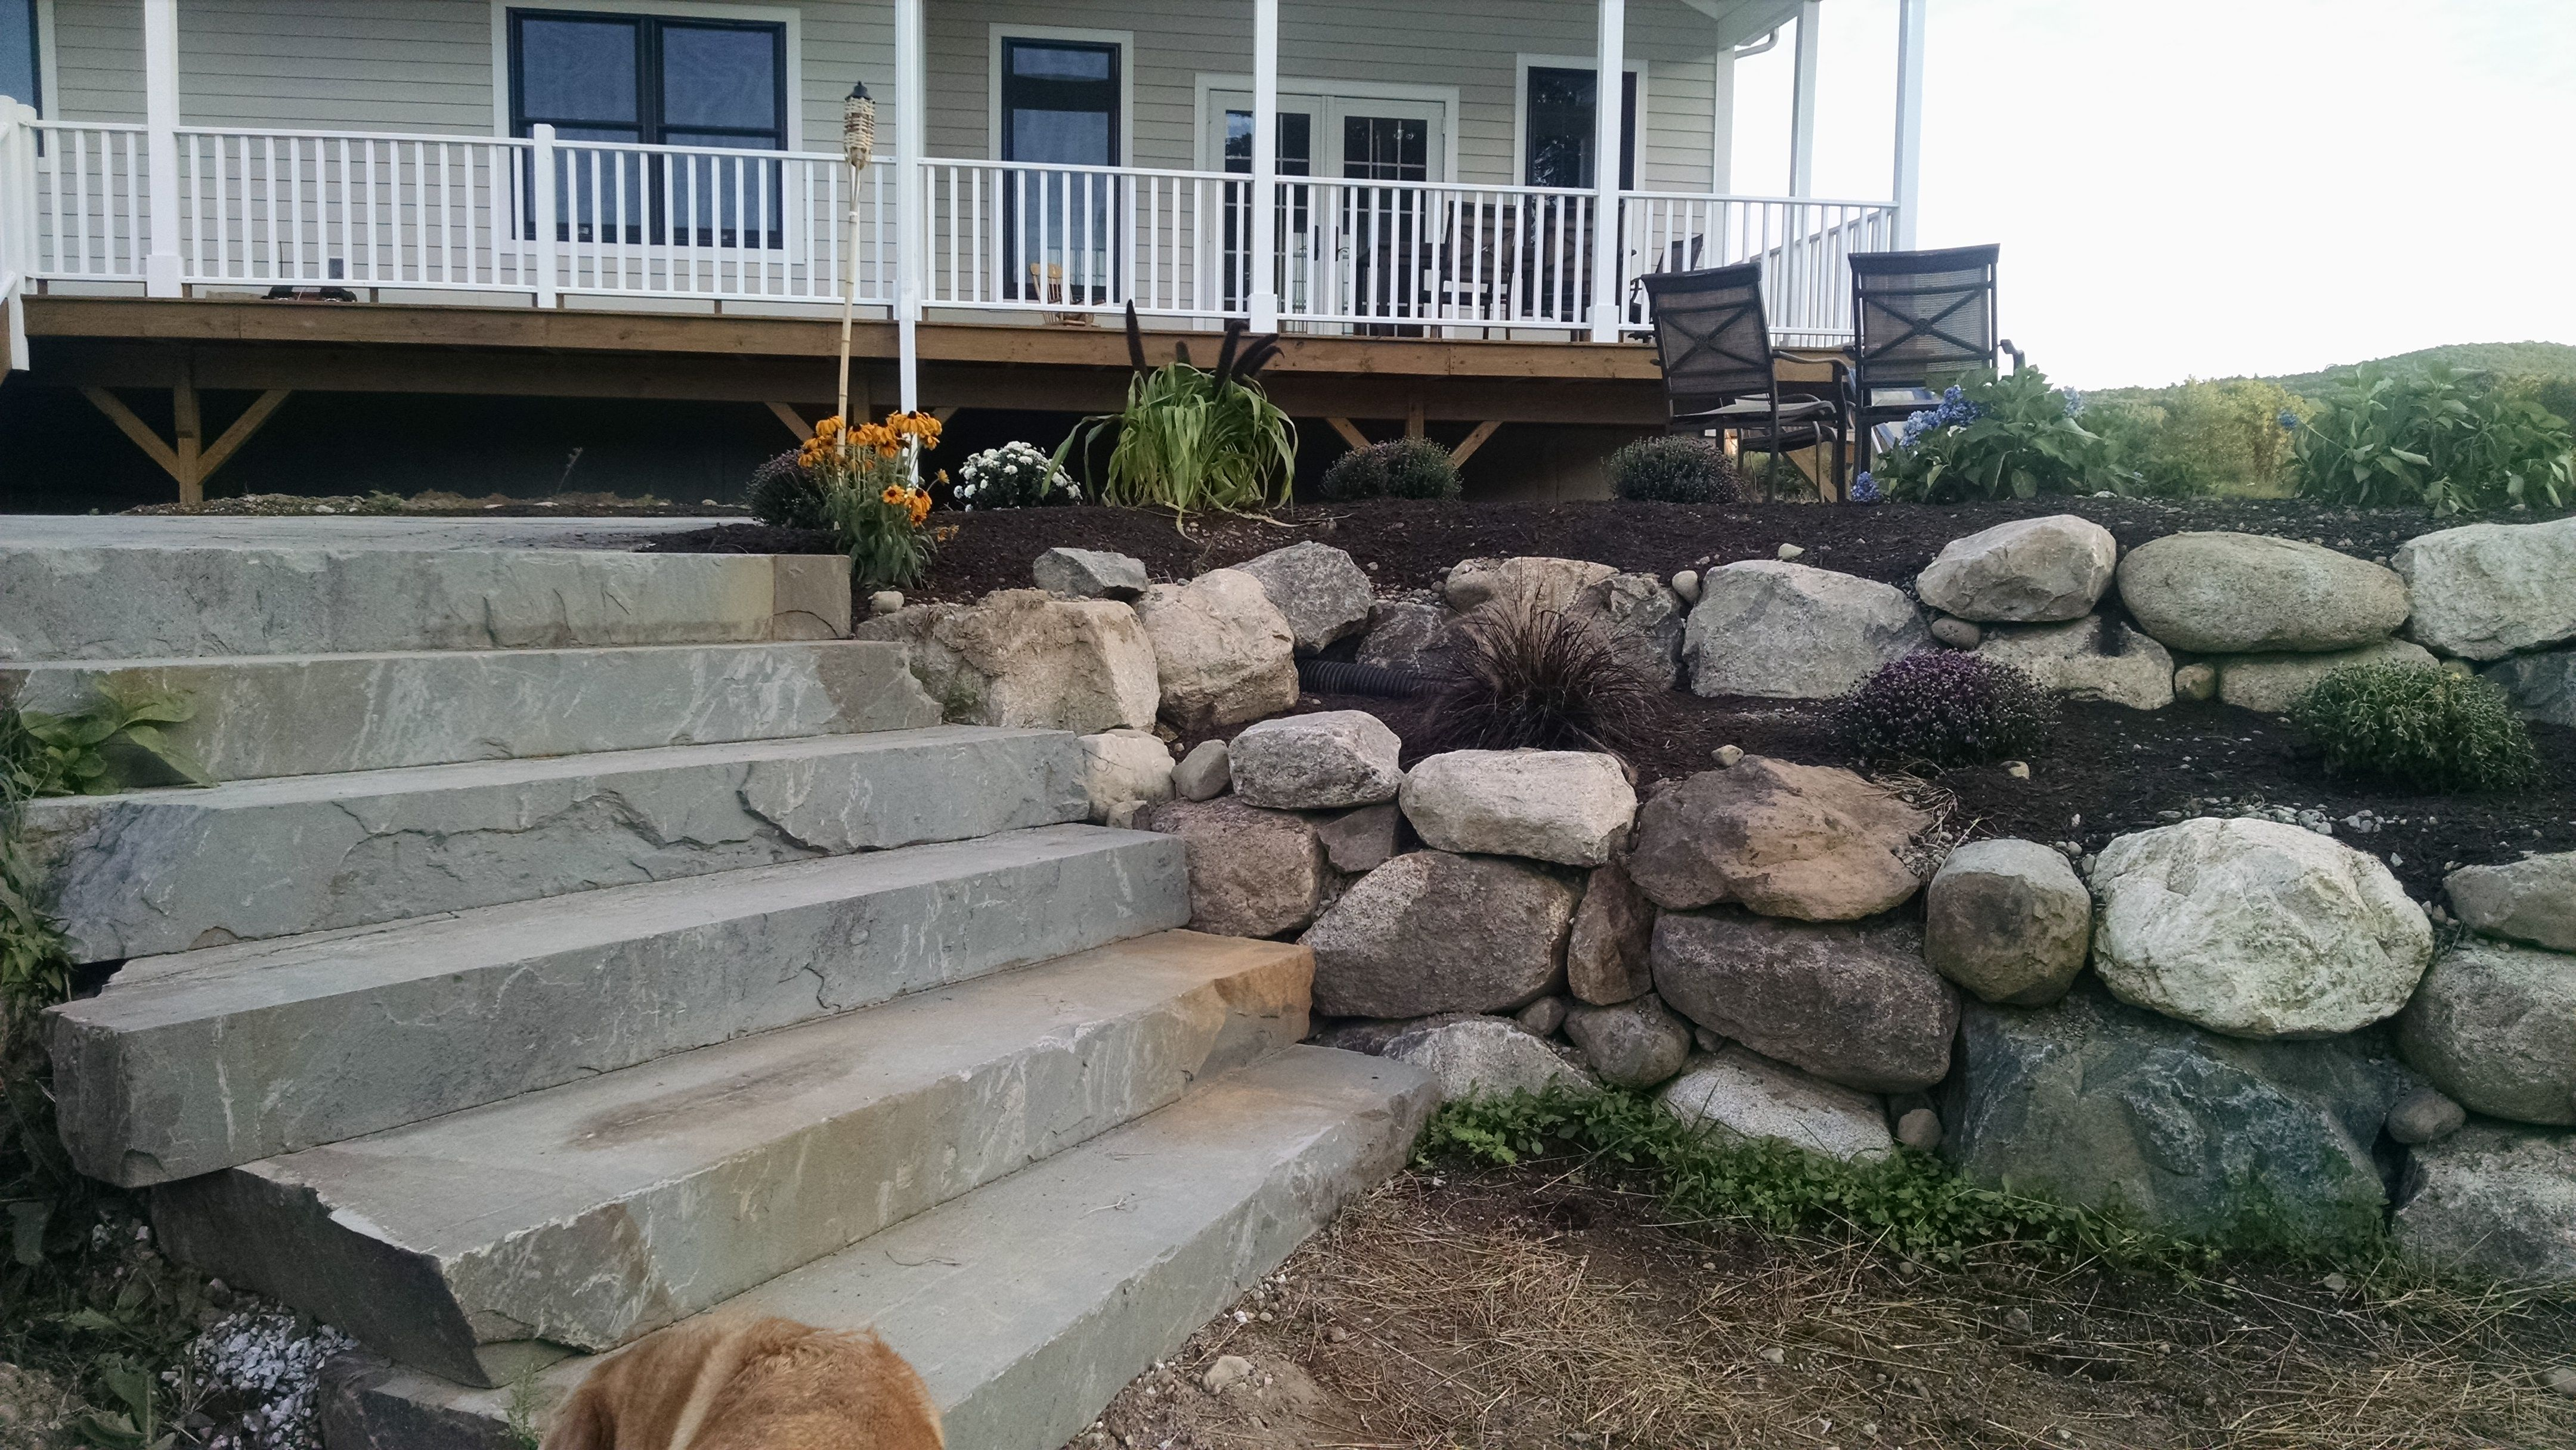 Beautiful Natural Rock Wall with Natural Blue Stone Steps ... on Rock And Stone Outdoor Living id=58210